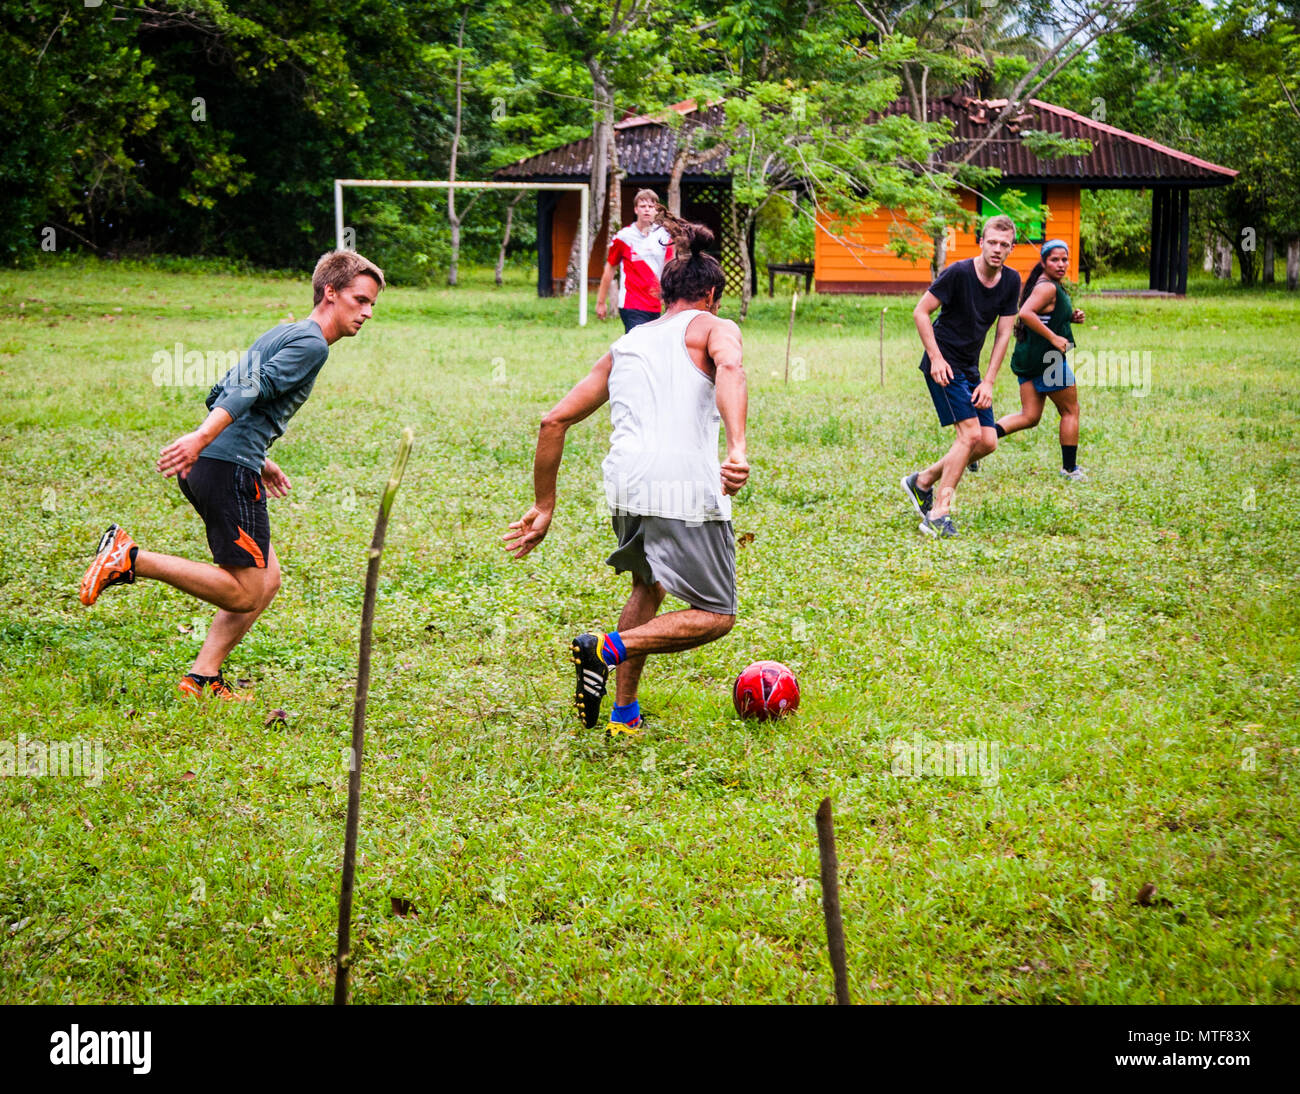 Football in Costa Rica - Stock Image